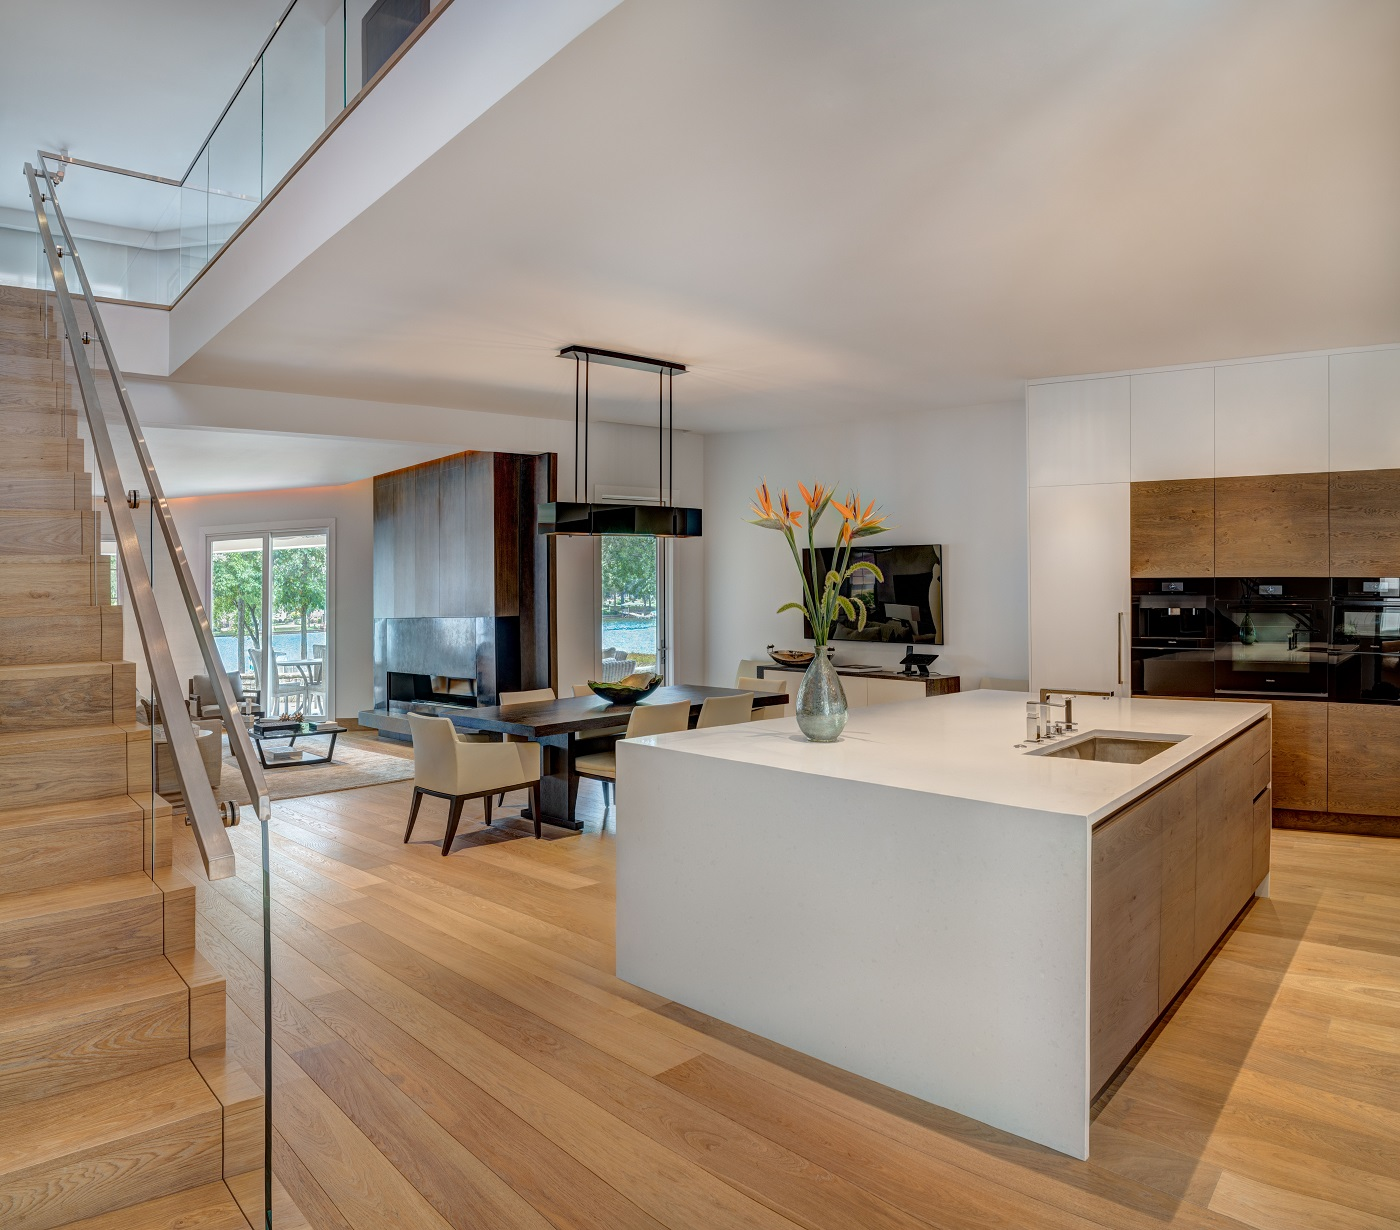 Augusta Homes Presents an HGTV-worthy Home Makeover - QC